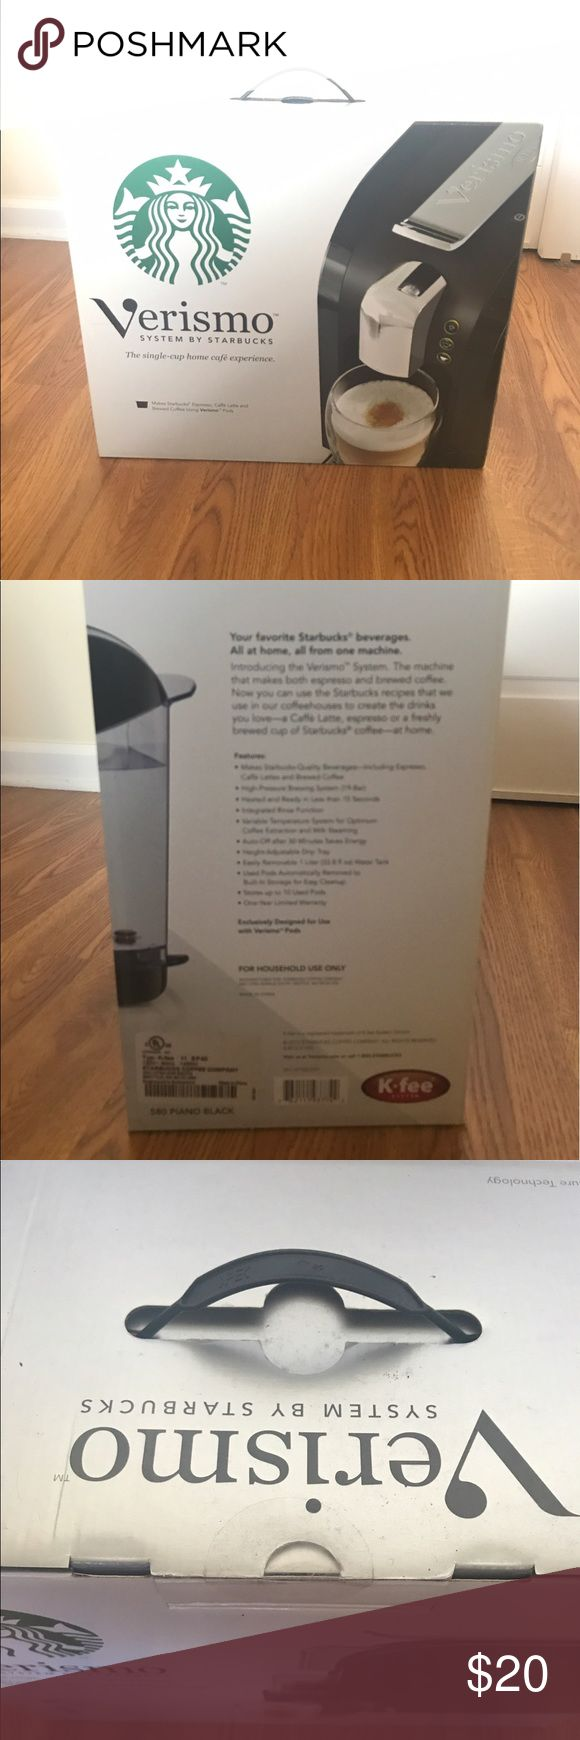 Verismo System by Starbucks Verismo System by Starbucks. The single-cup home café experience. Brand new. Sealed in box. verismo Other